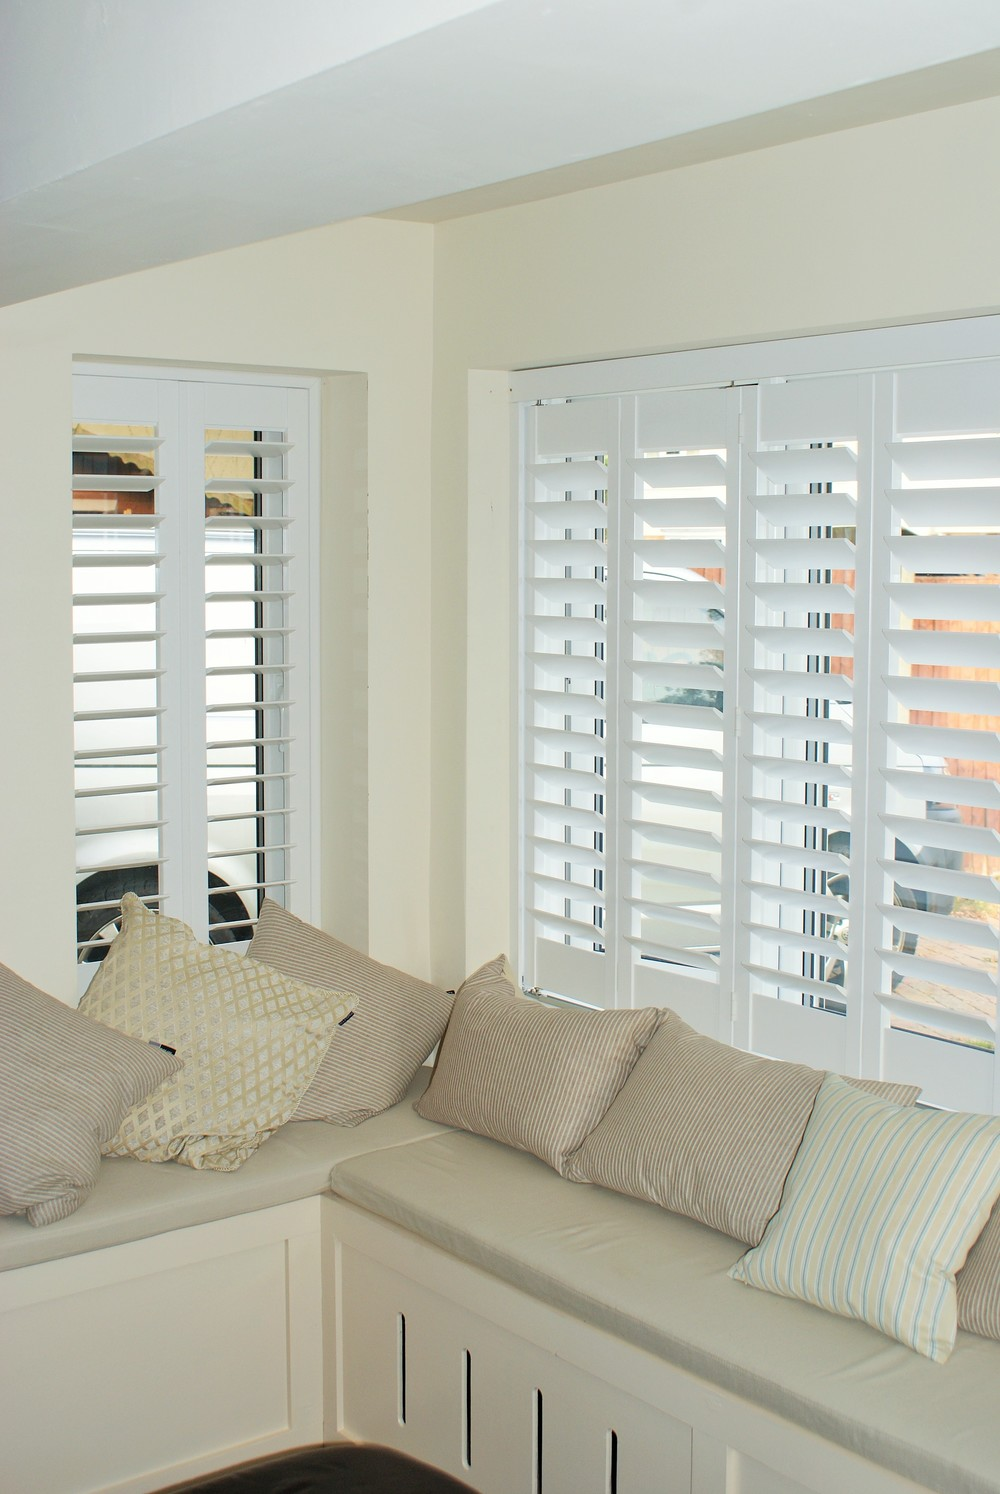 Interior plantation shutters Verwood West Moors Ferndown Dorset